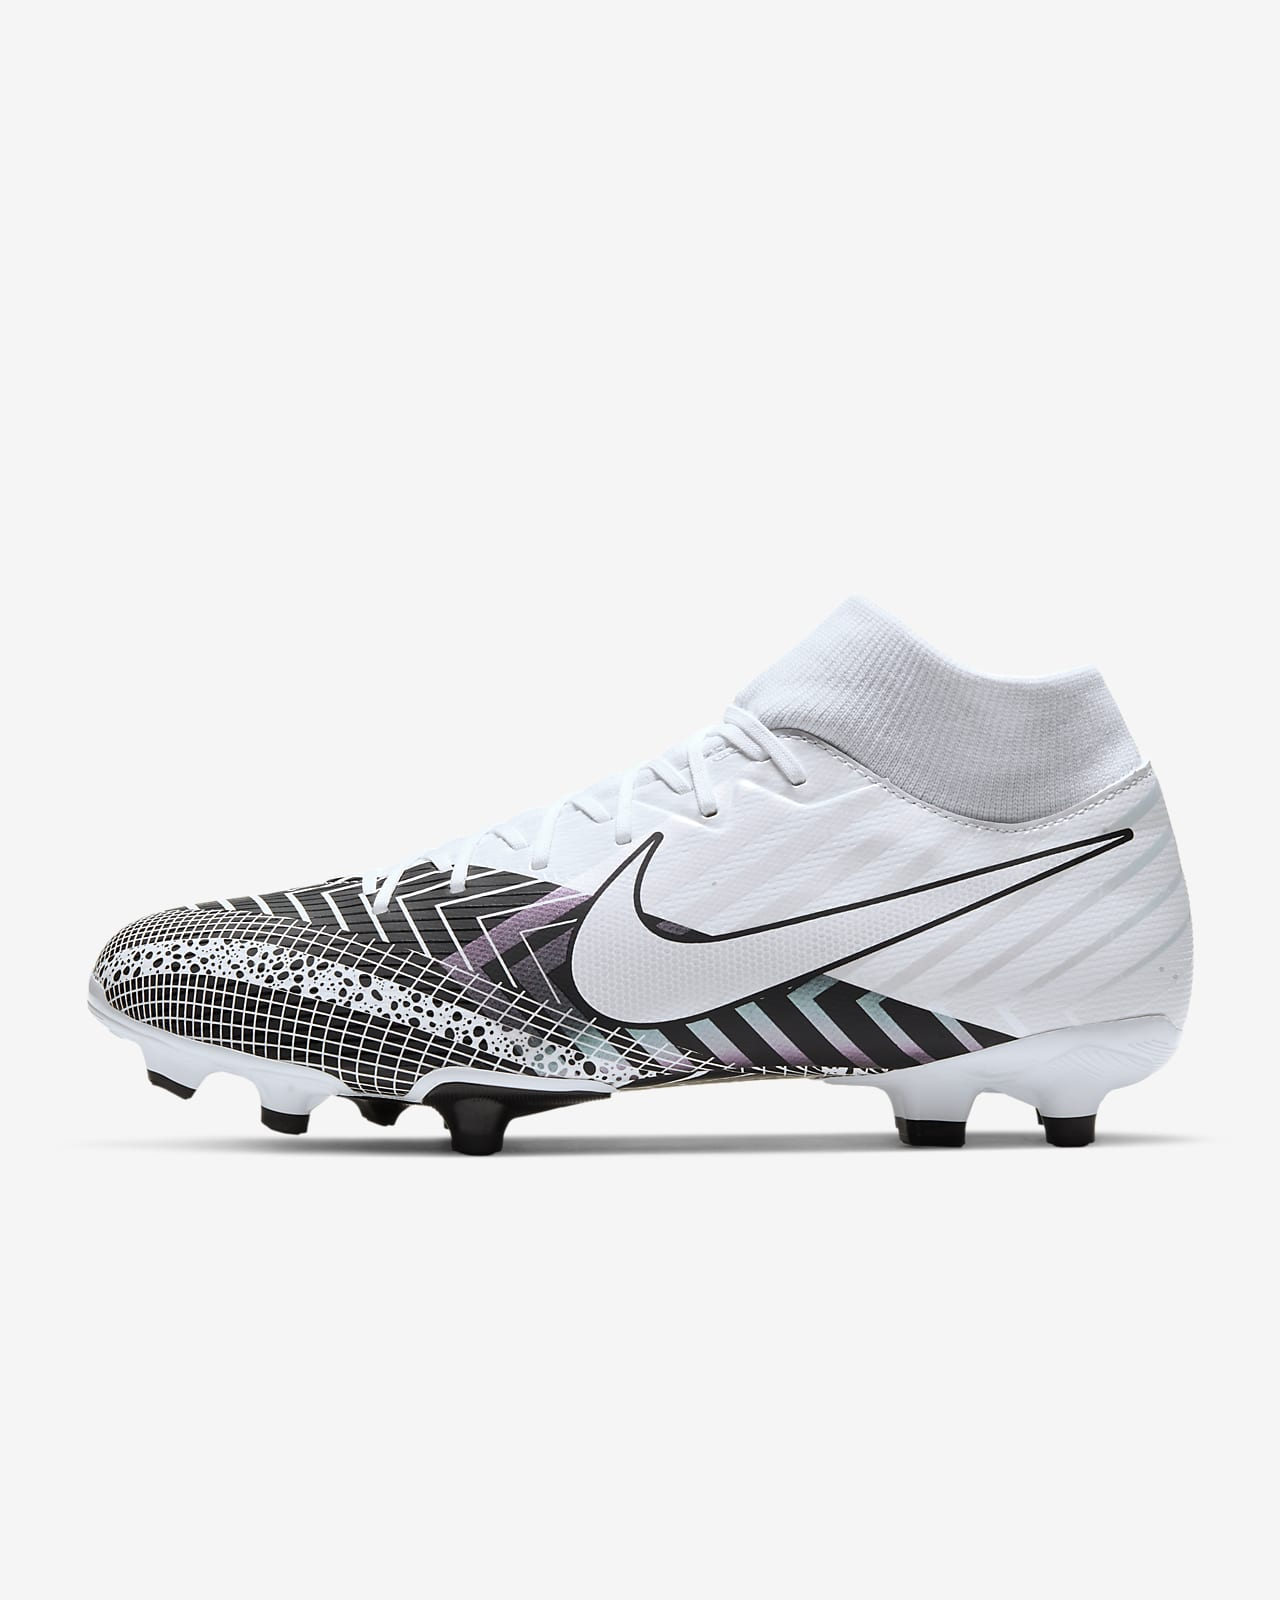 Moviente Criticar Mantenimiento  Nike Mercurial Superfly 7 Academy MDS MG Multi-Ground Football Boot. Nike IL